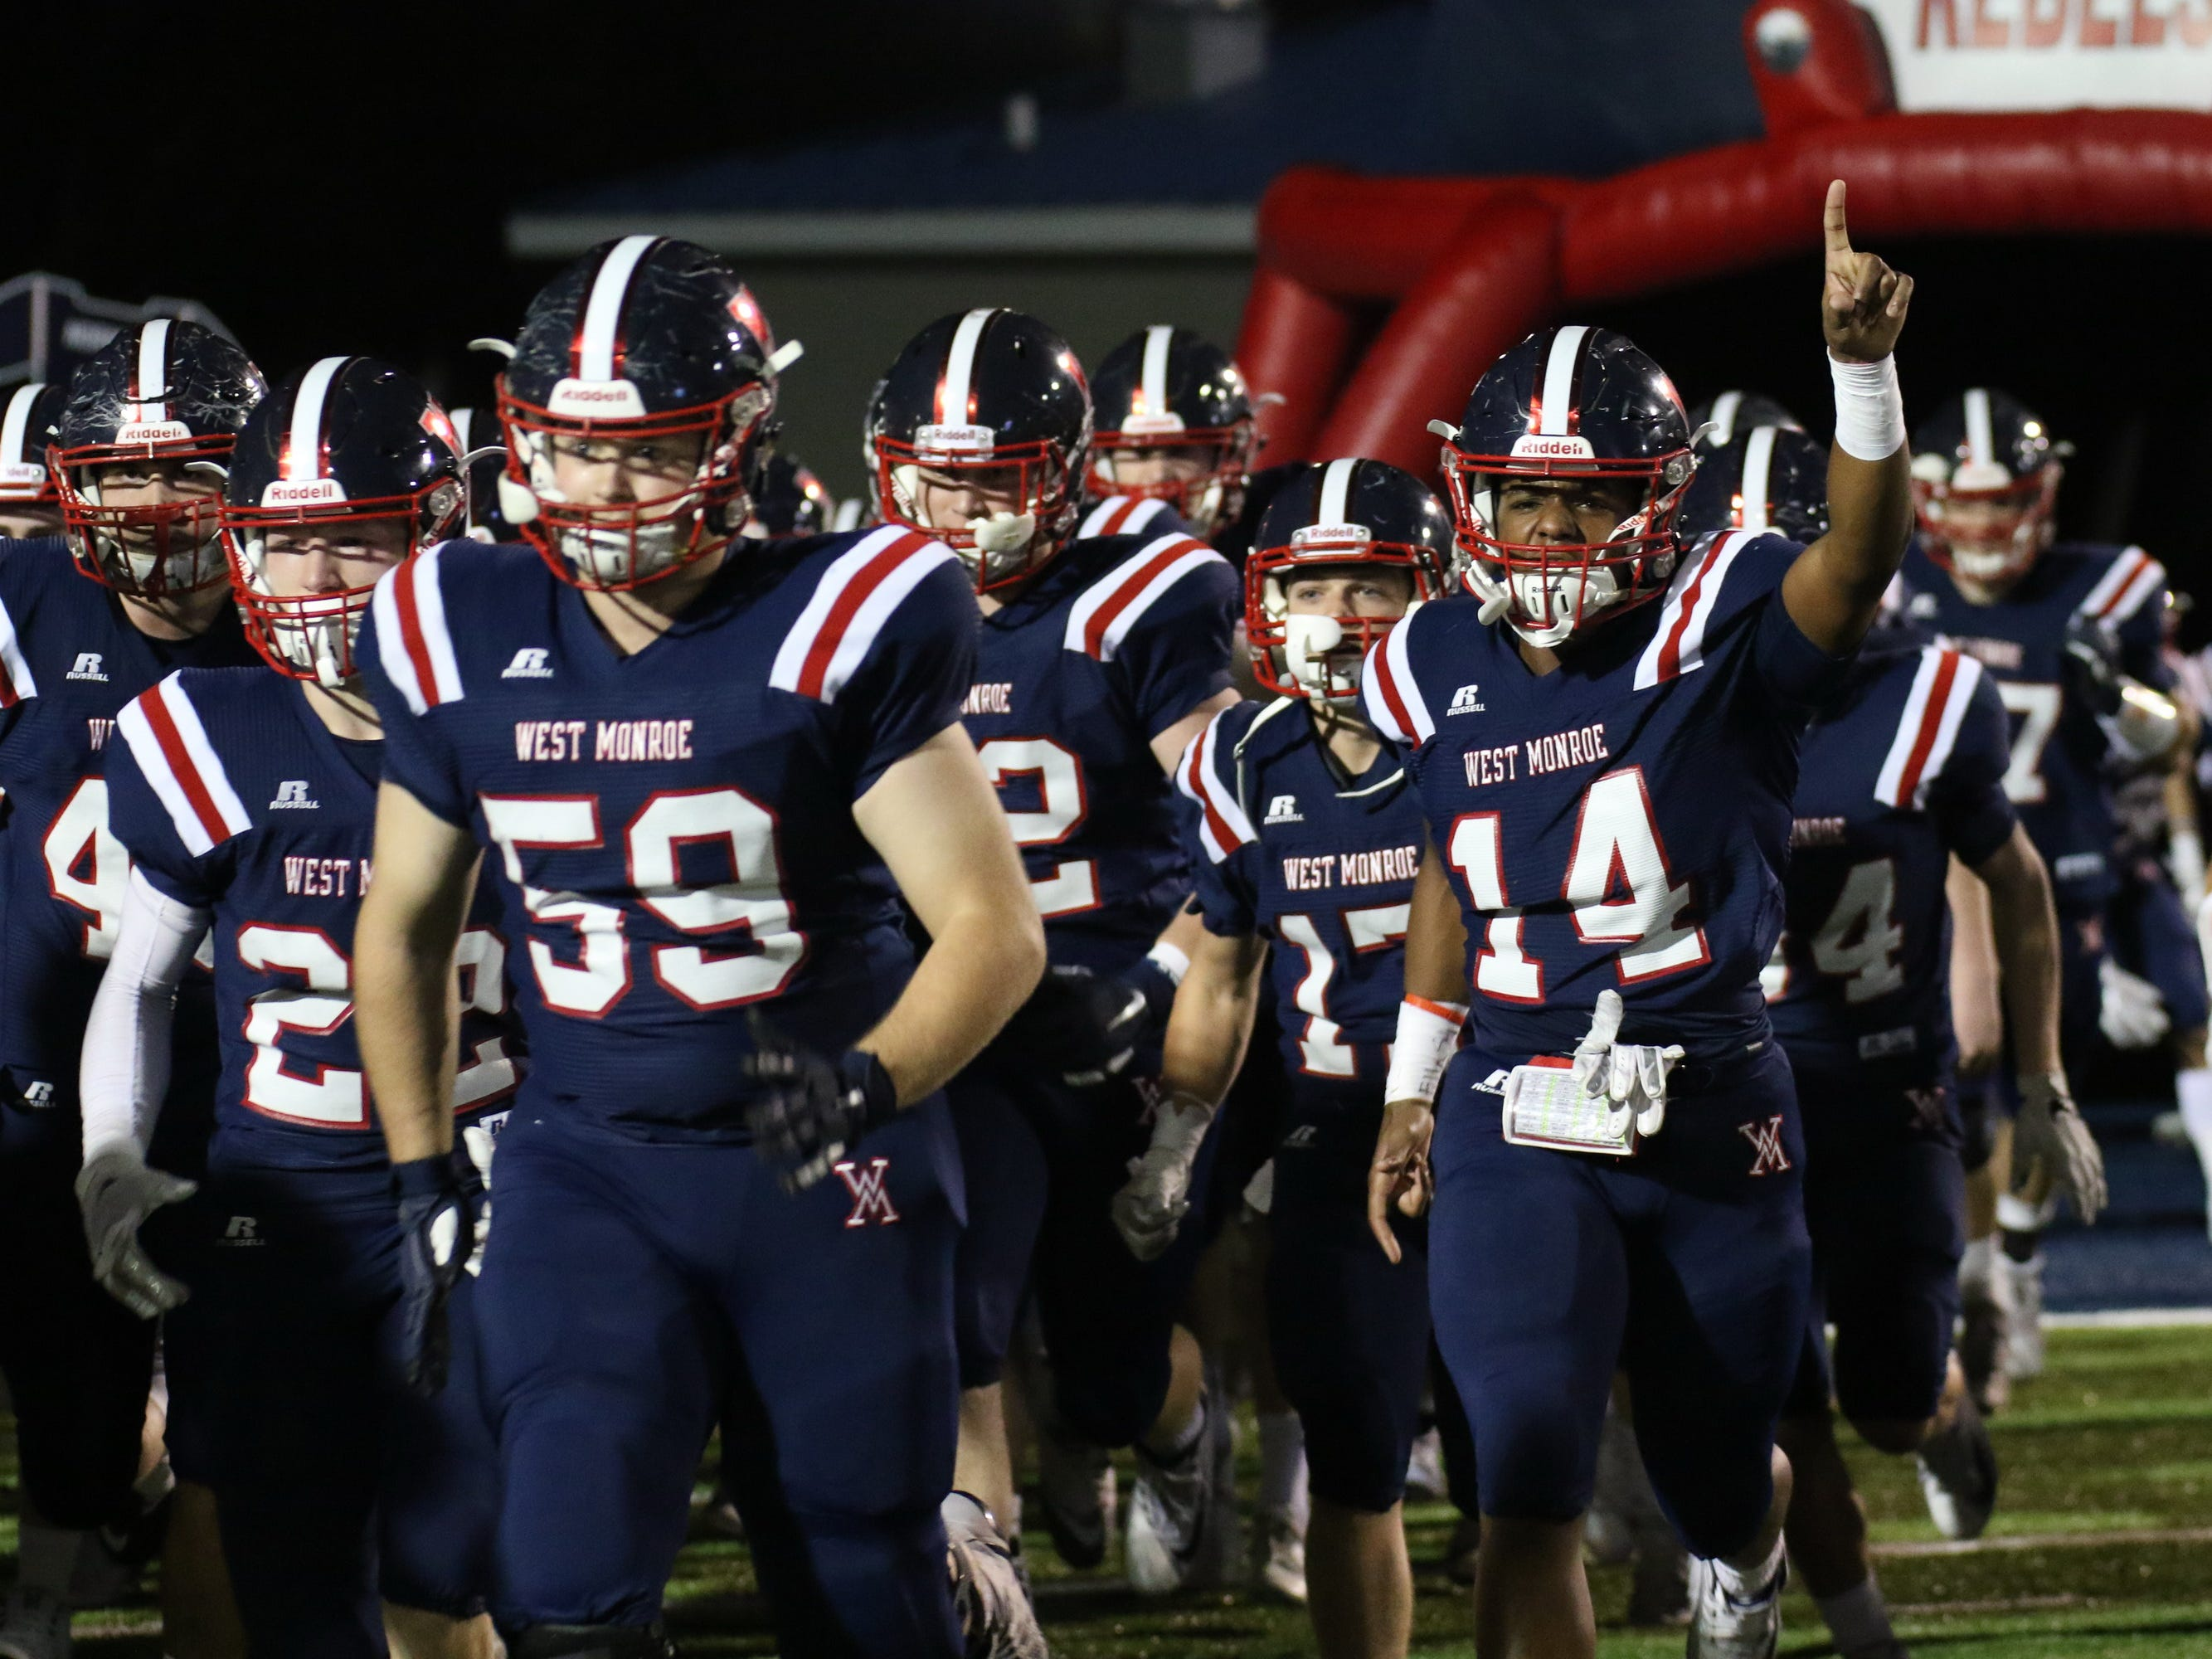 West Monroe blanks John Ehret 28-0 at West Monroe High School in West Monroe, La. Nov. 30 and plays for the Class 4A state championship next week.